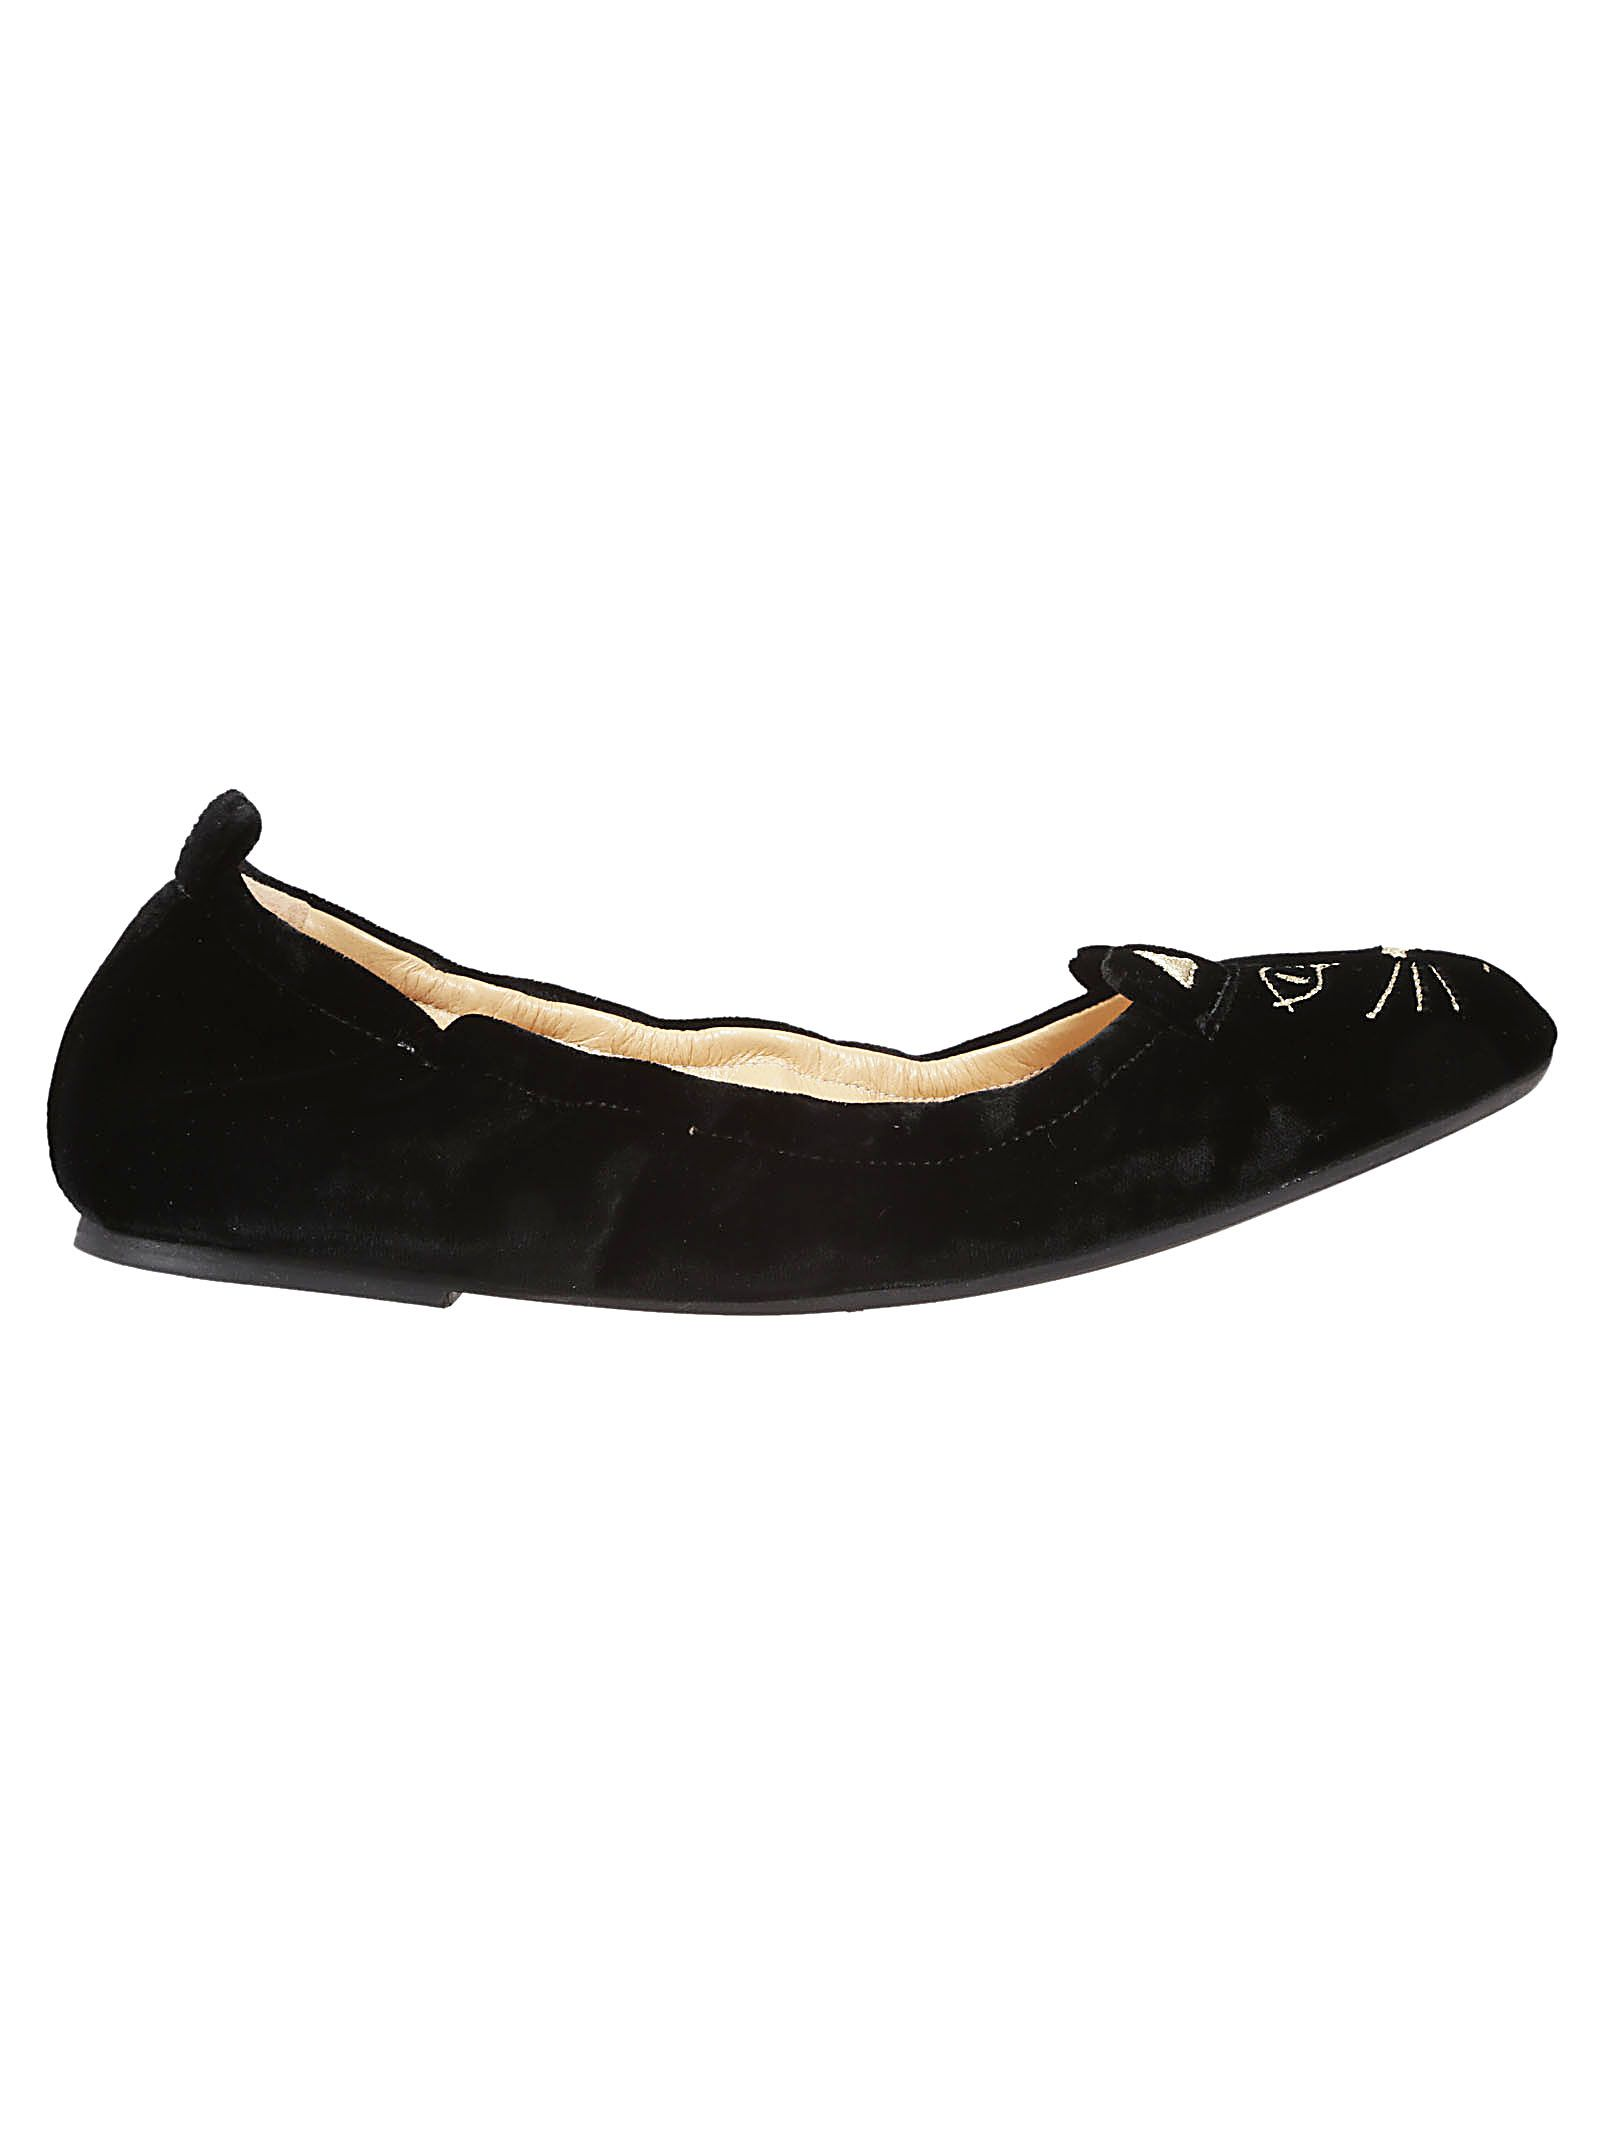 Buy Cheap Pick A Best Buy Cheap Supply Charlotte Olympia Kitten Embroidered Ballerinas Fashion Style Online 8KIImbrs